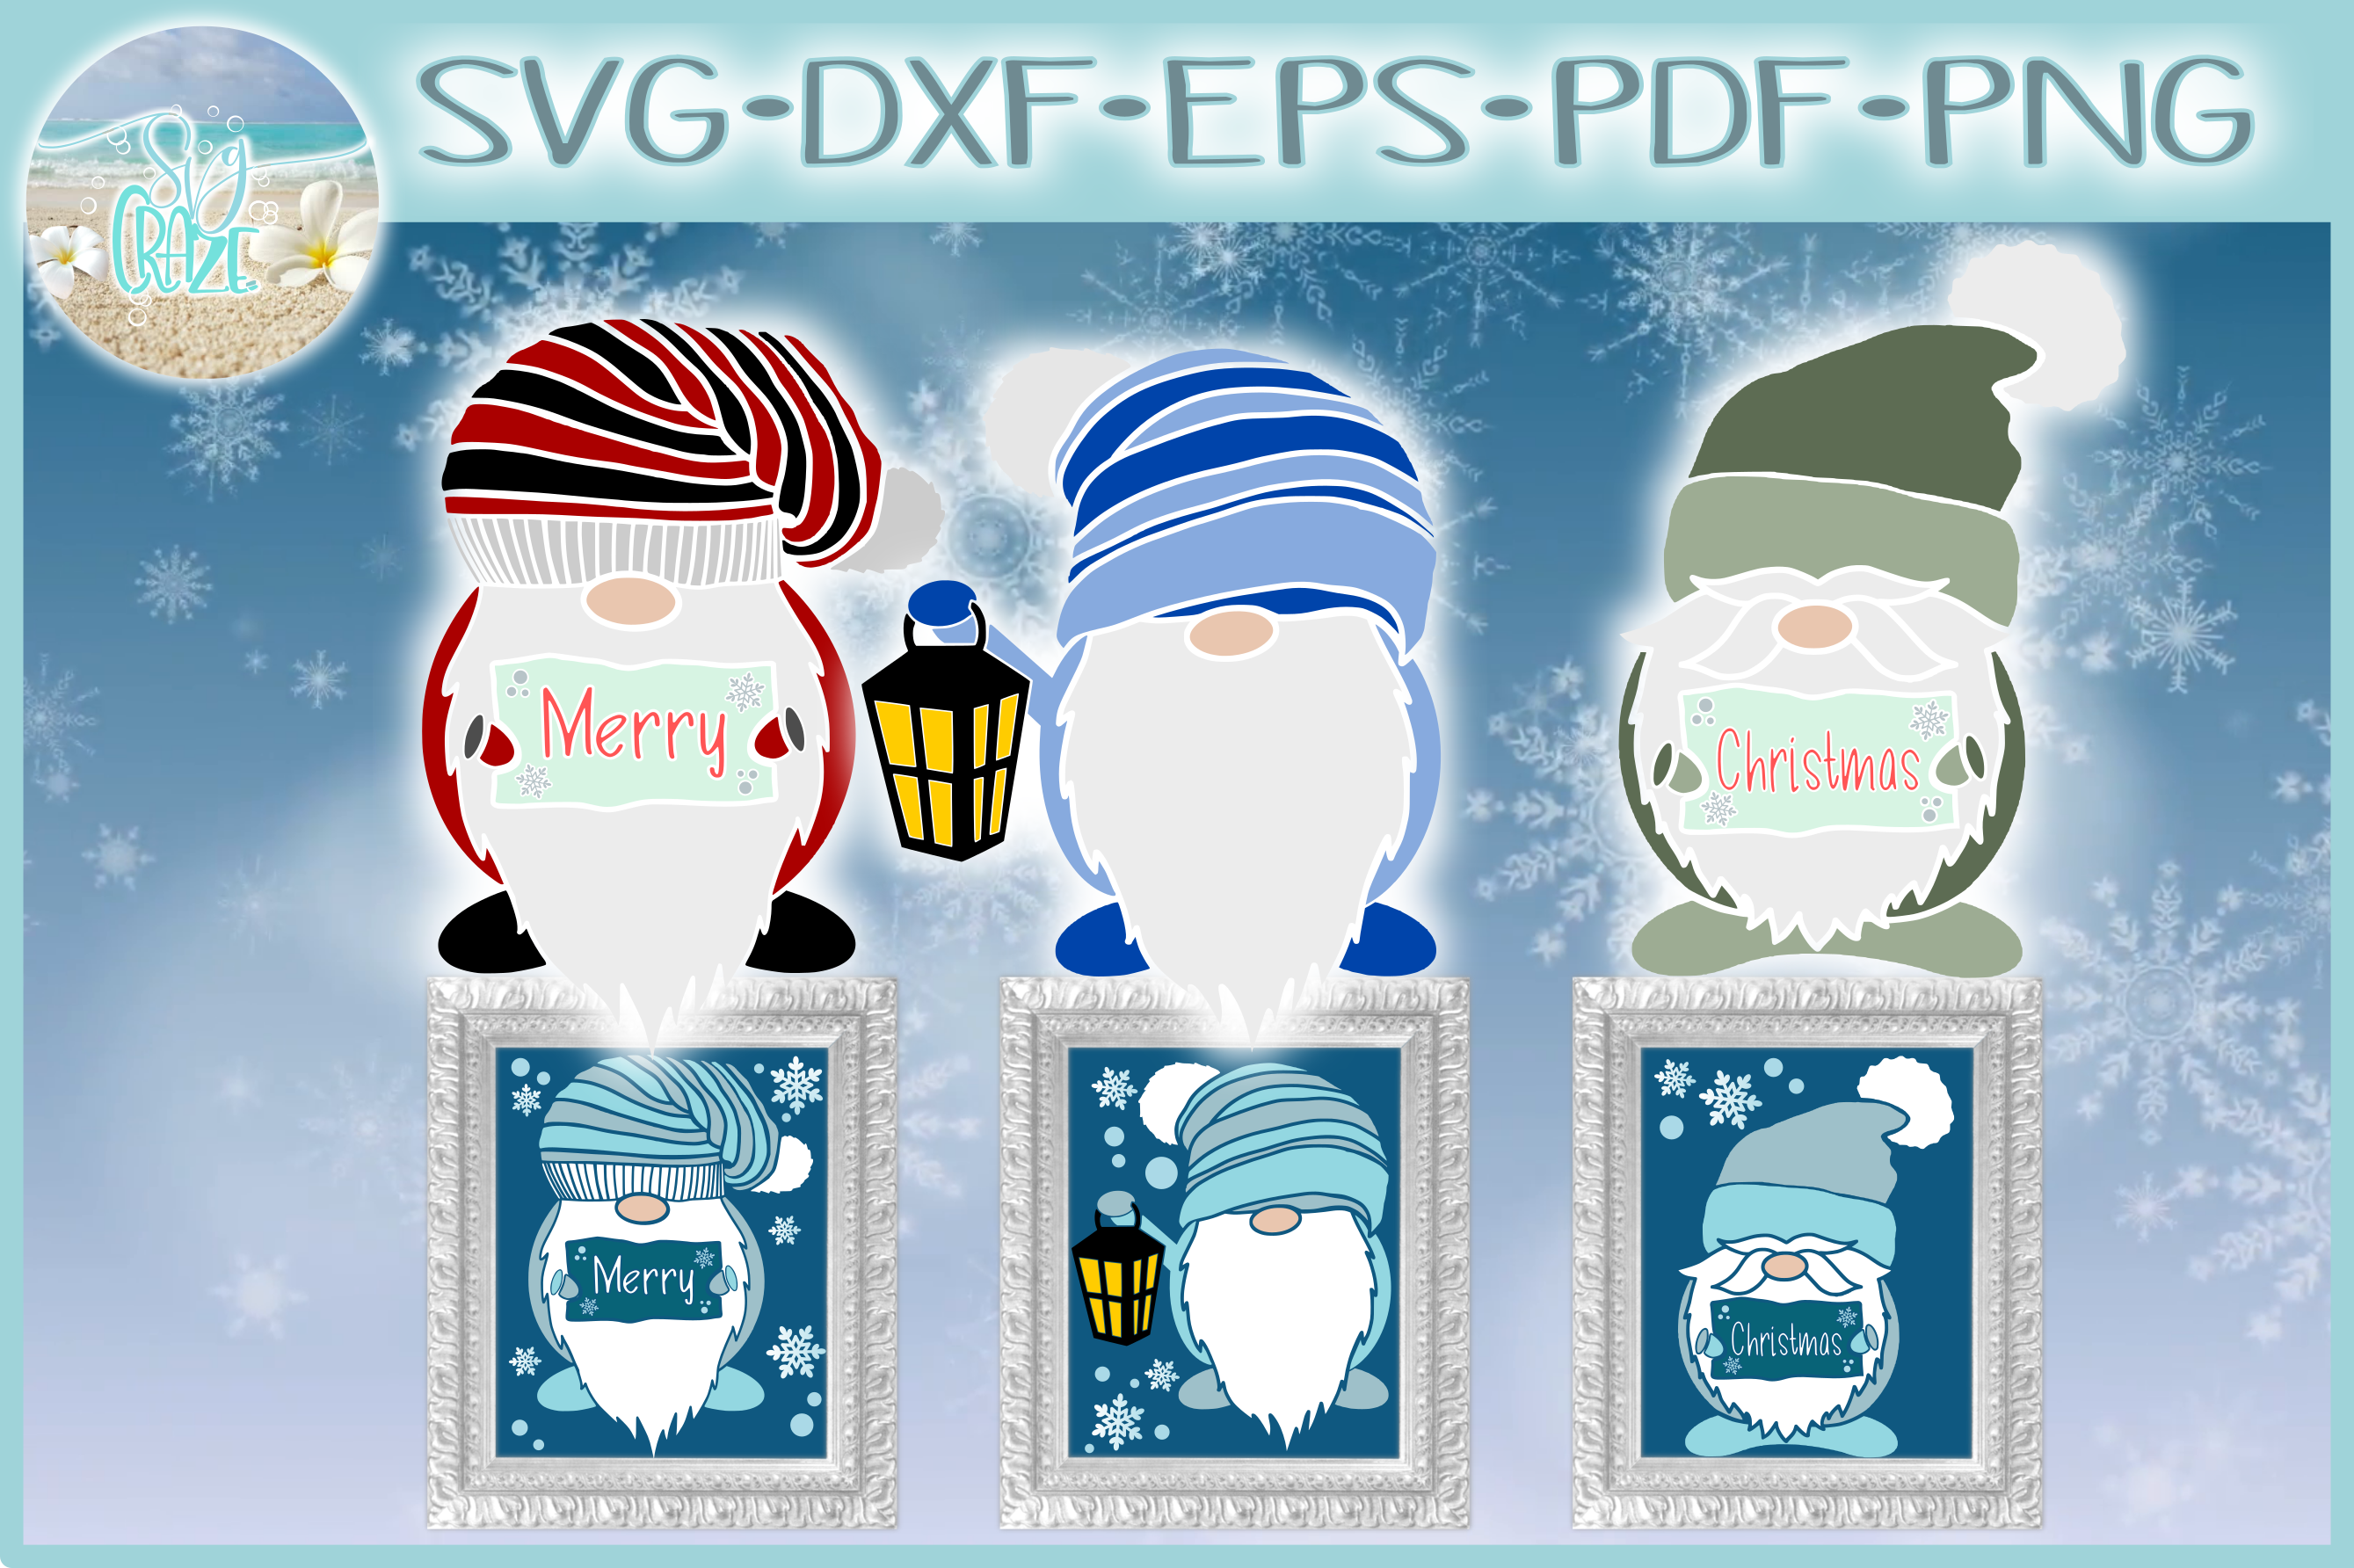 Merry Christmas Gnomes SVG Dxf Eps Png Pdf Files For Cricut example image 1